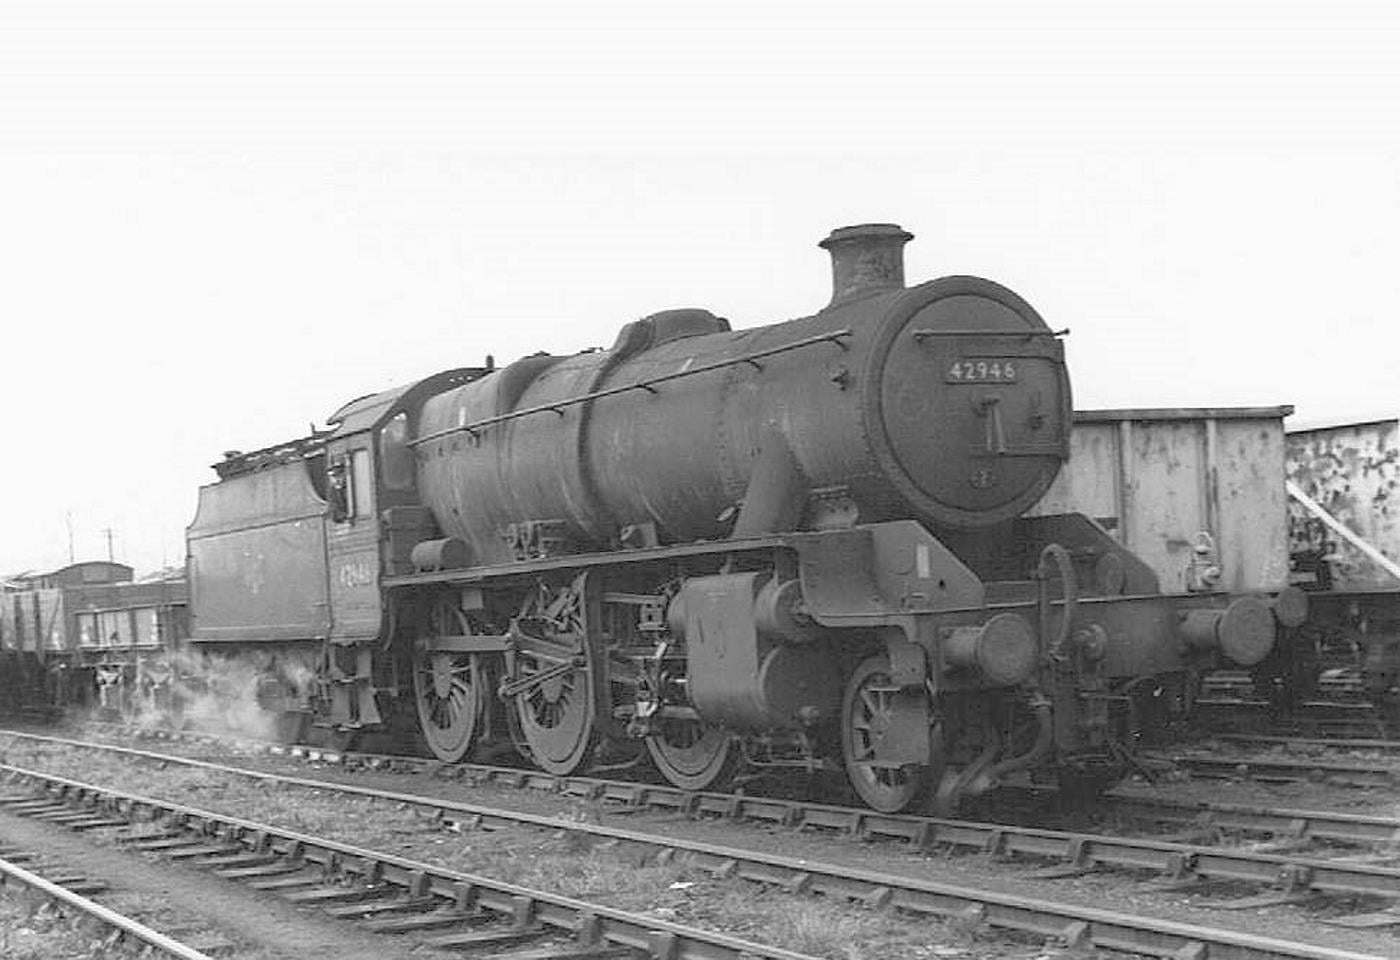 42946 with Square Topped Cylinders Credit mrs398, WarwickshireRailways.com